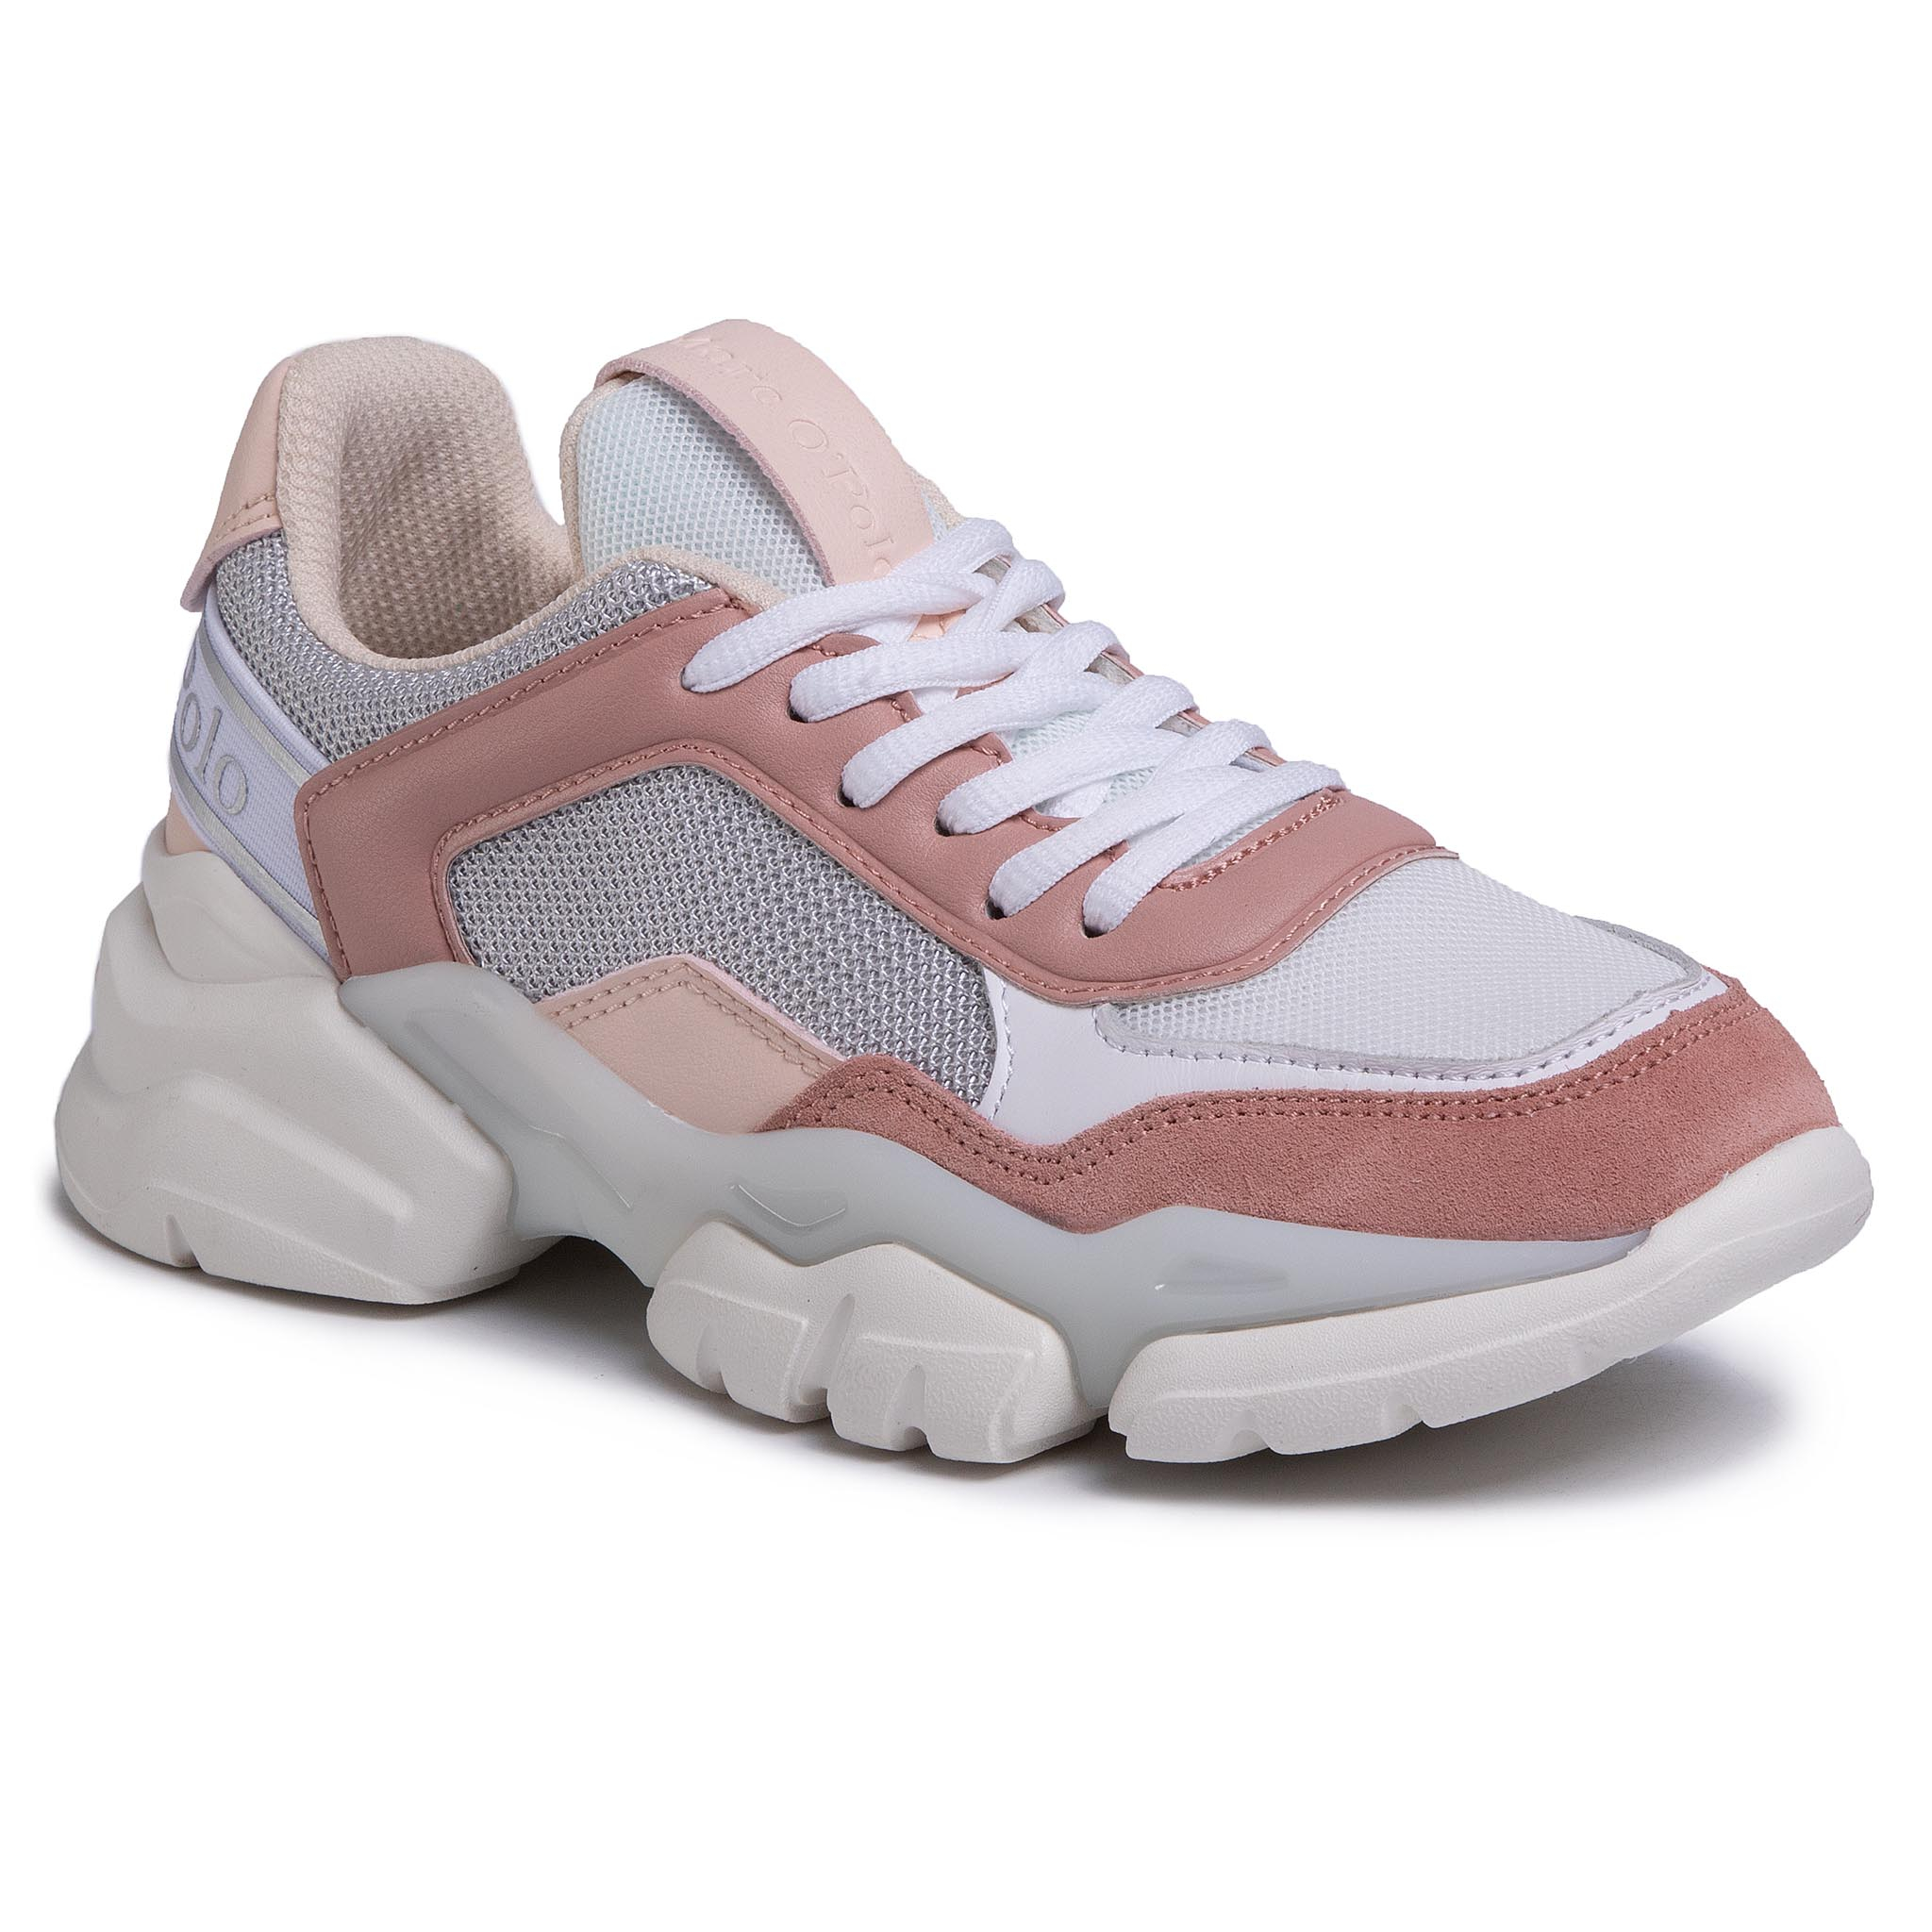 Sneakersy MARC O'POLO - 001 15503502 610  Rose Combi 308